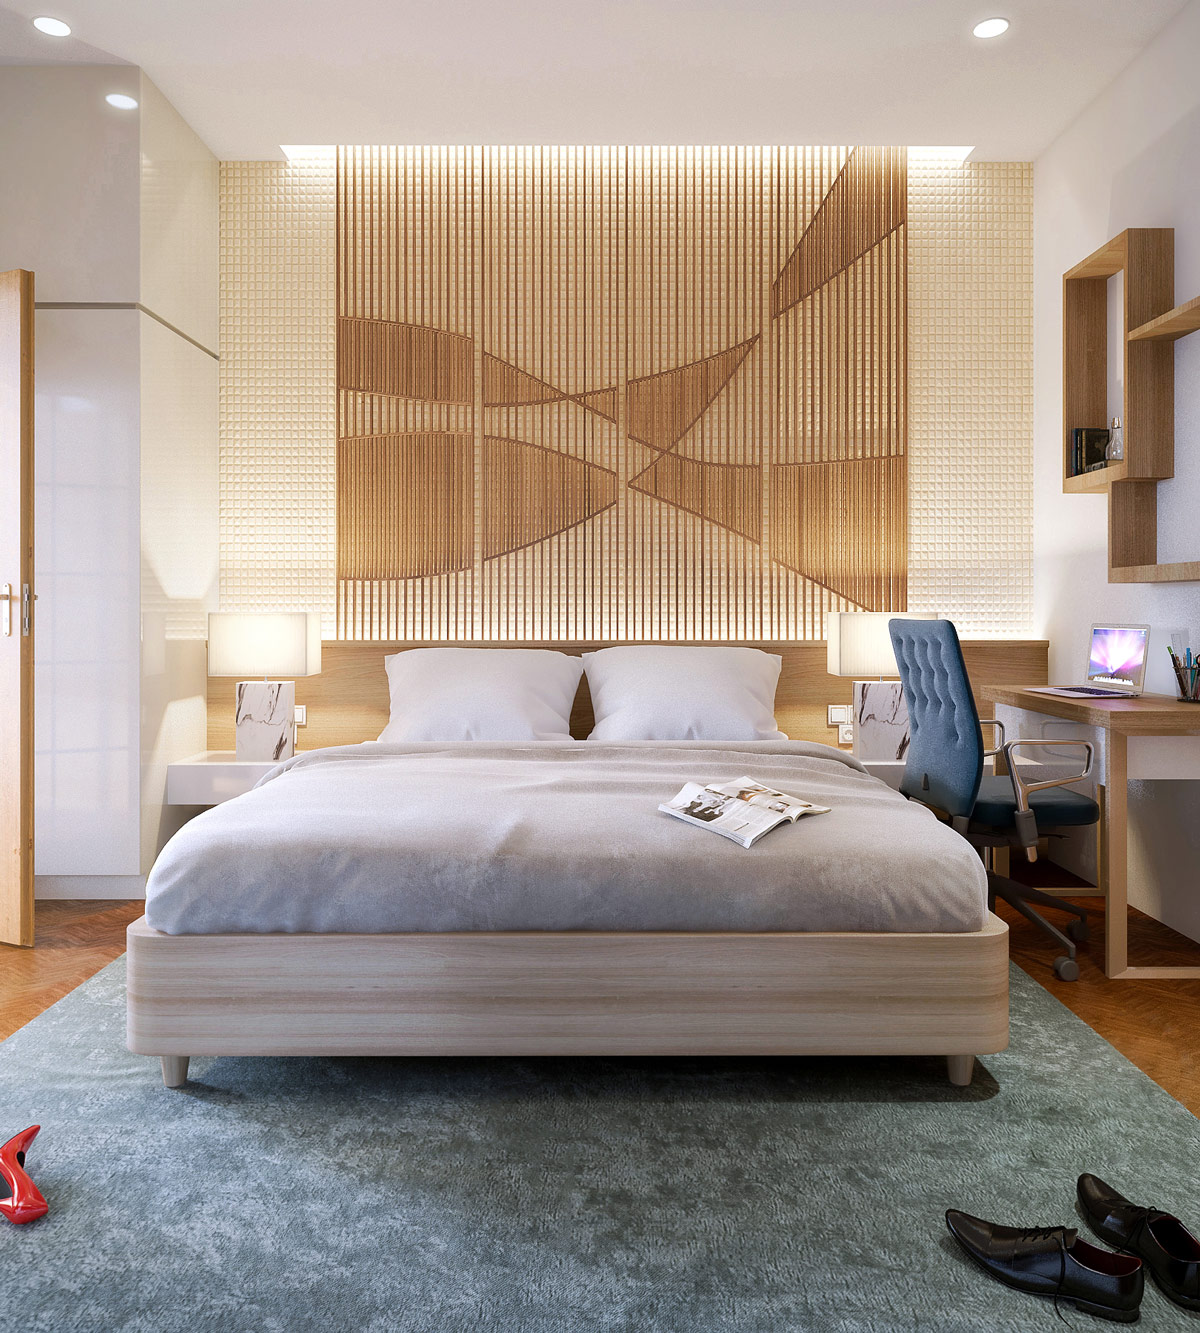 Accent Wall Pictures: 25 Beautiful Examples Of Bedroom Accent Walls That Use